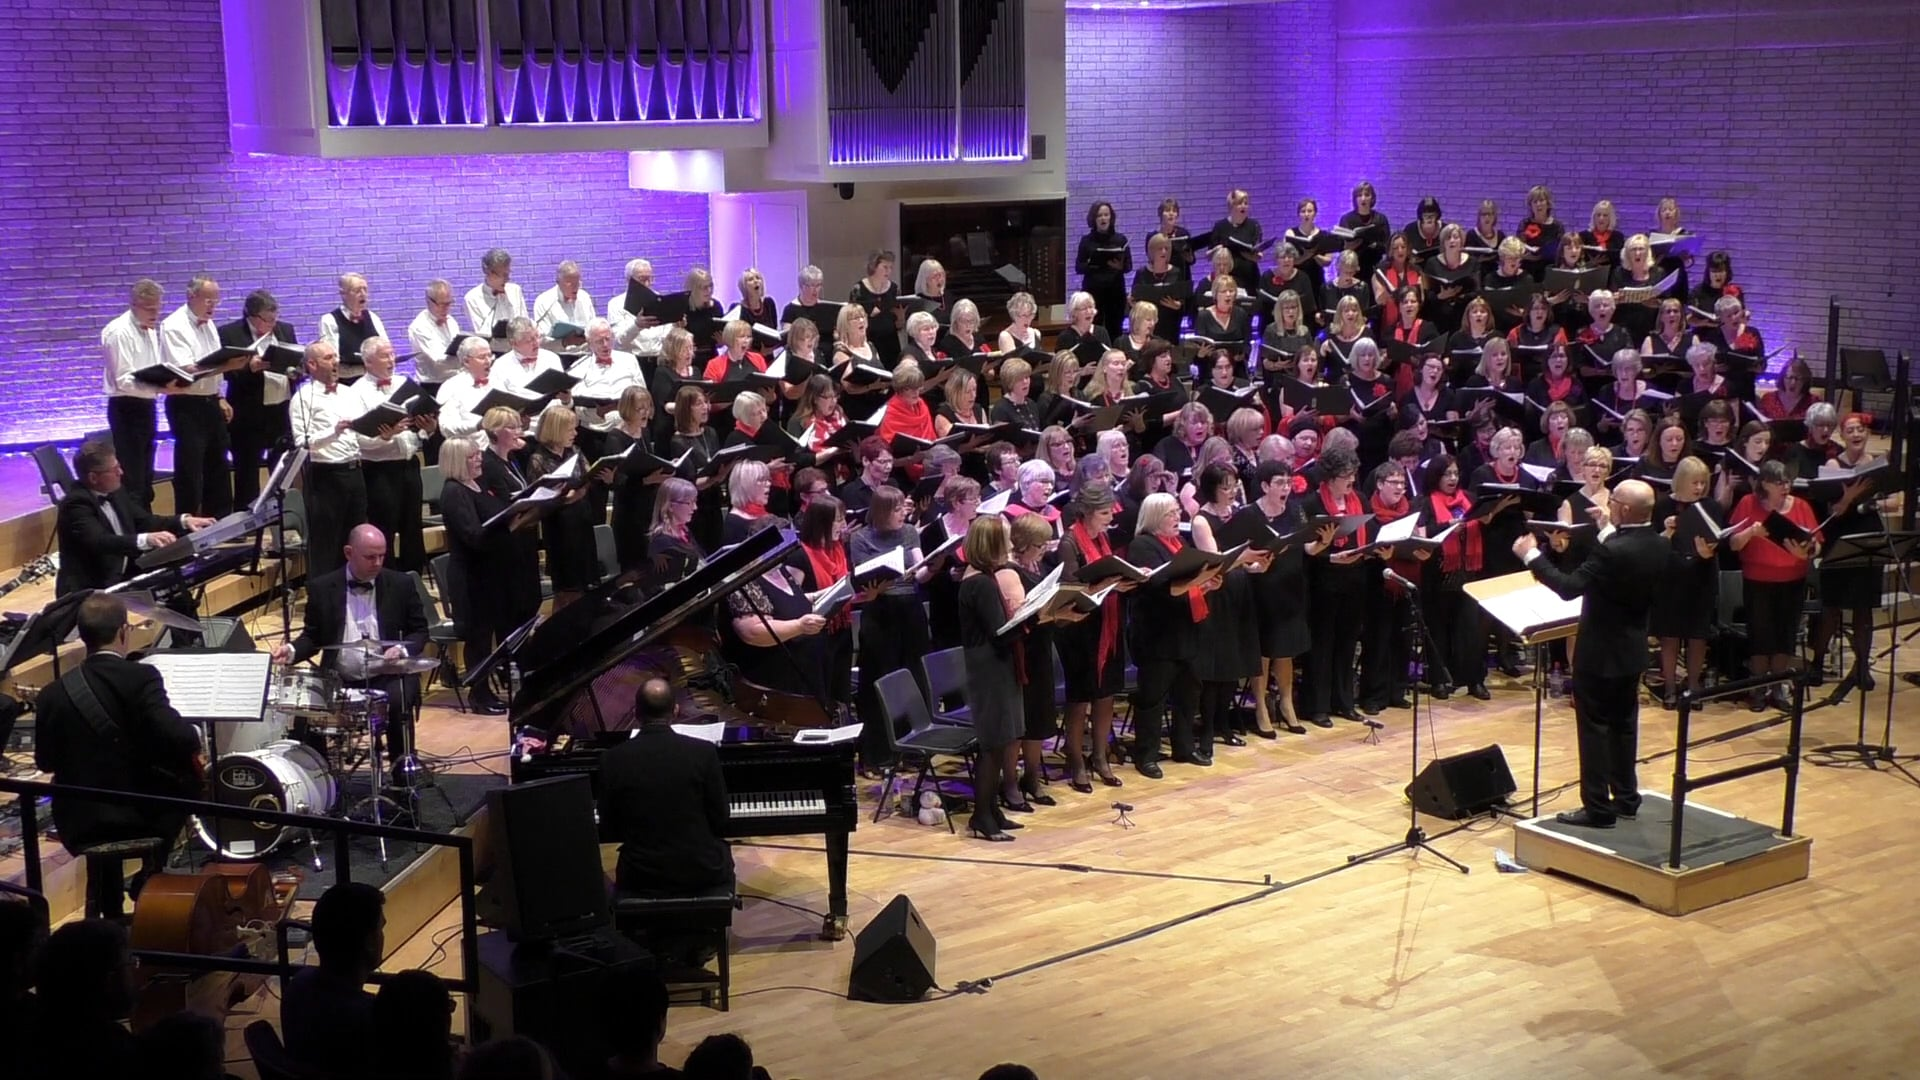 Magic Voices Live at the Royal Northern College of Music